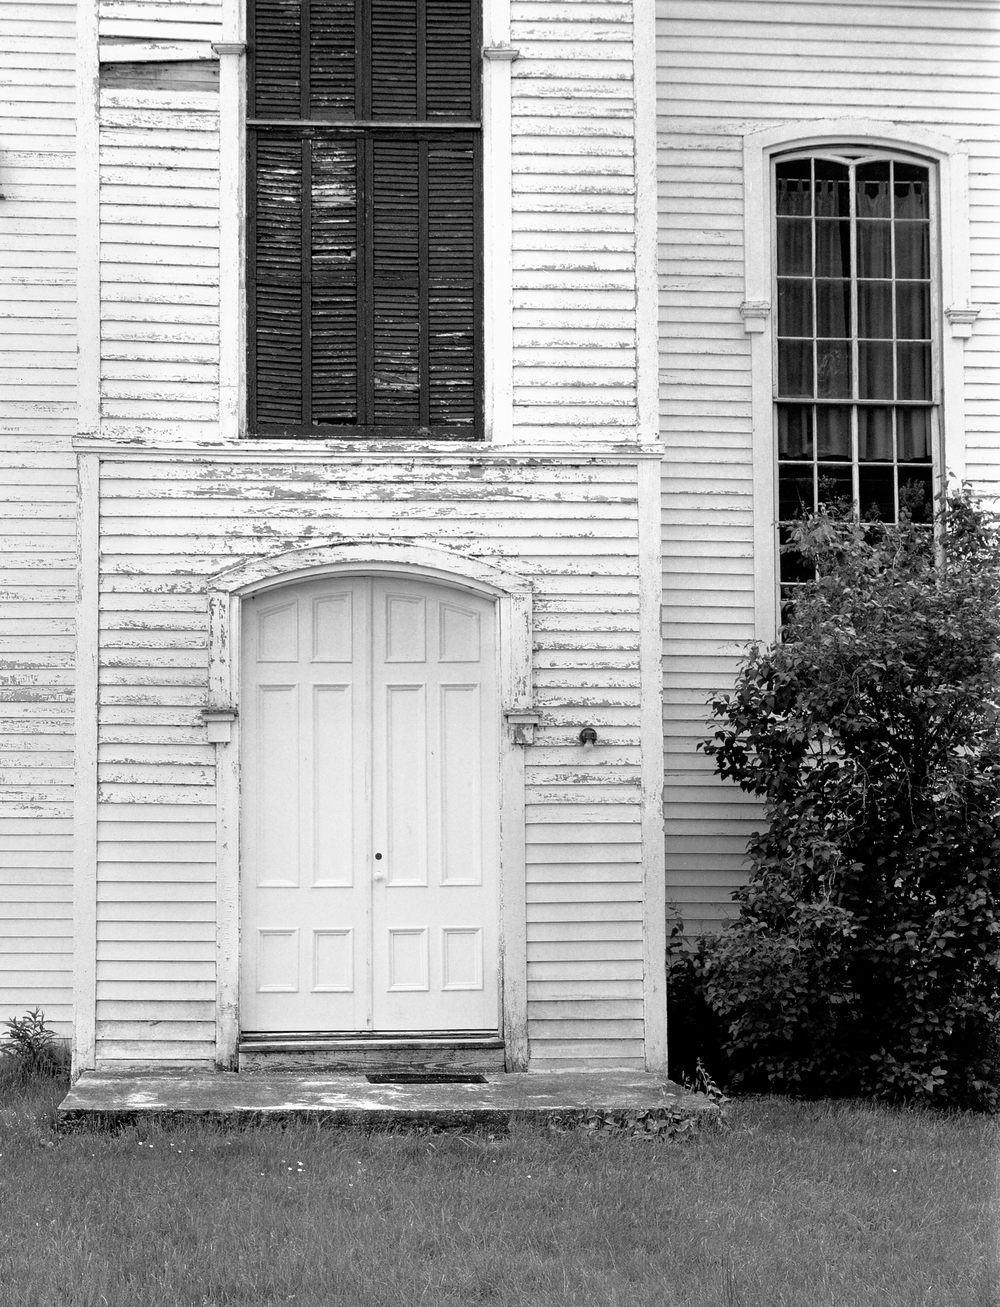 4x5_for_365_project_0179_Walpack_Center_church.png